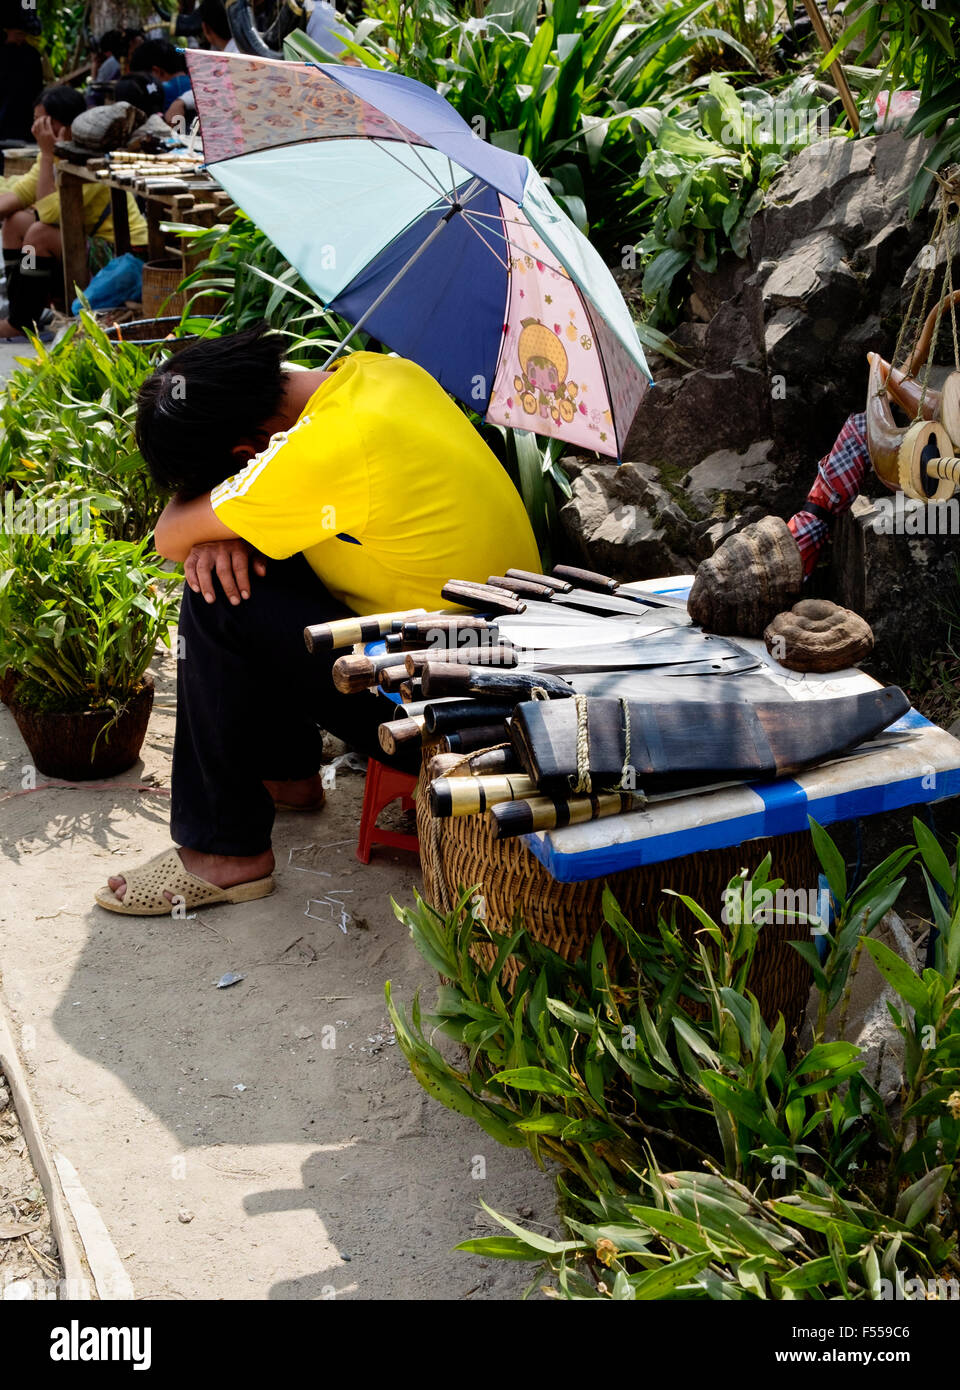 A man sells knives on the streets of Sapa, Lào Cai Provence, North West Vietnam. - Stock Image